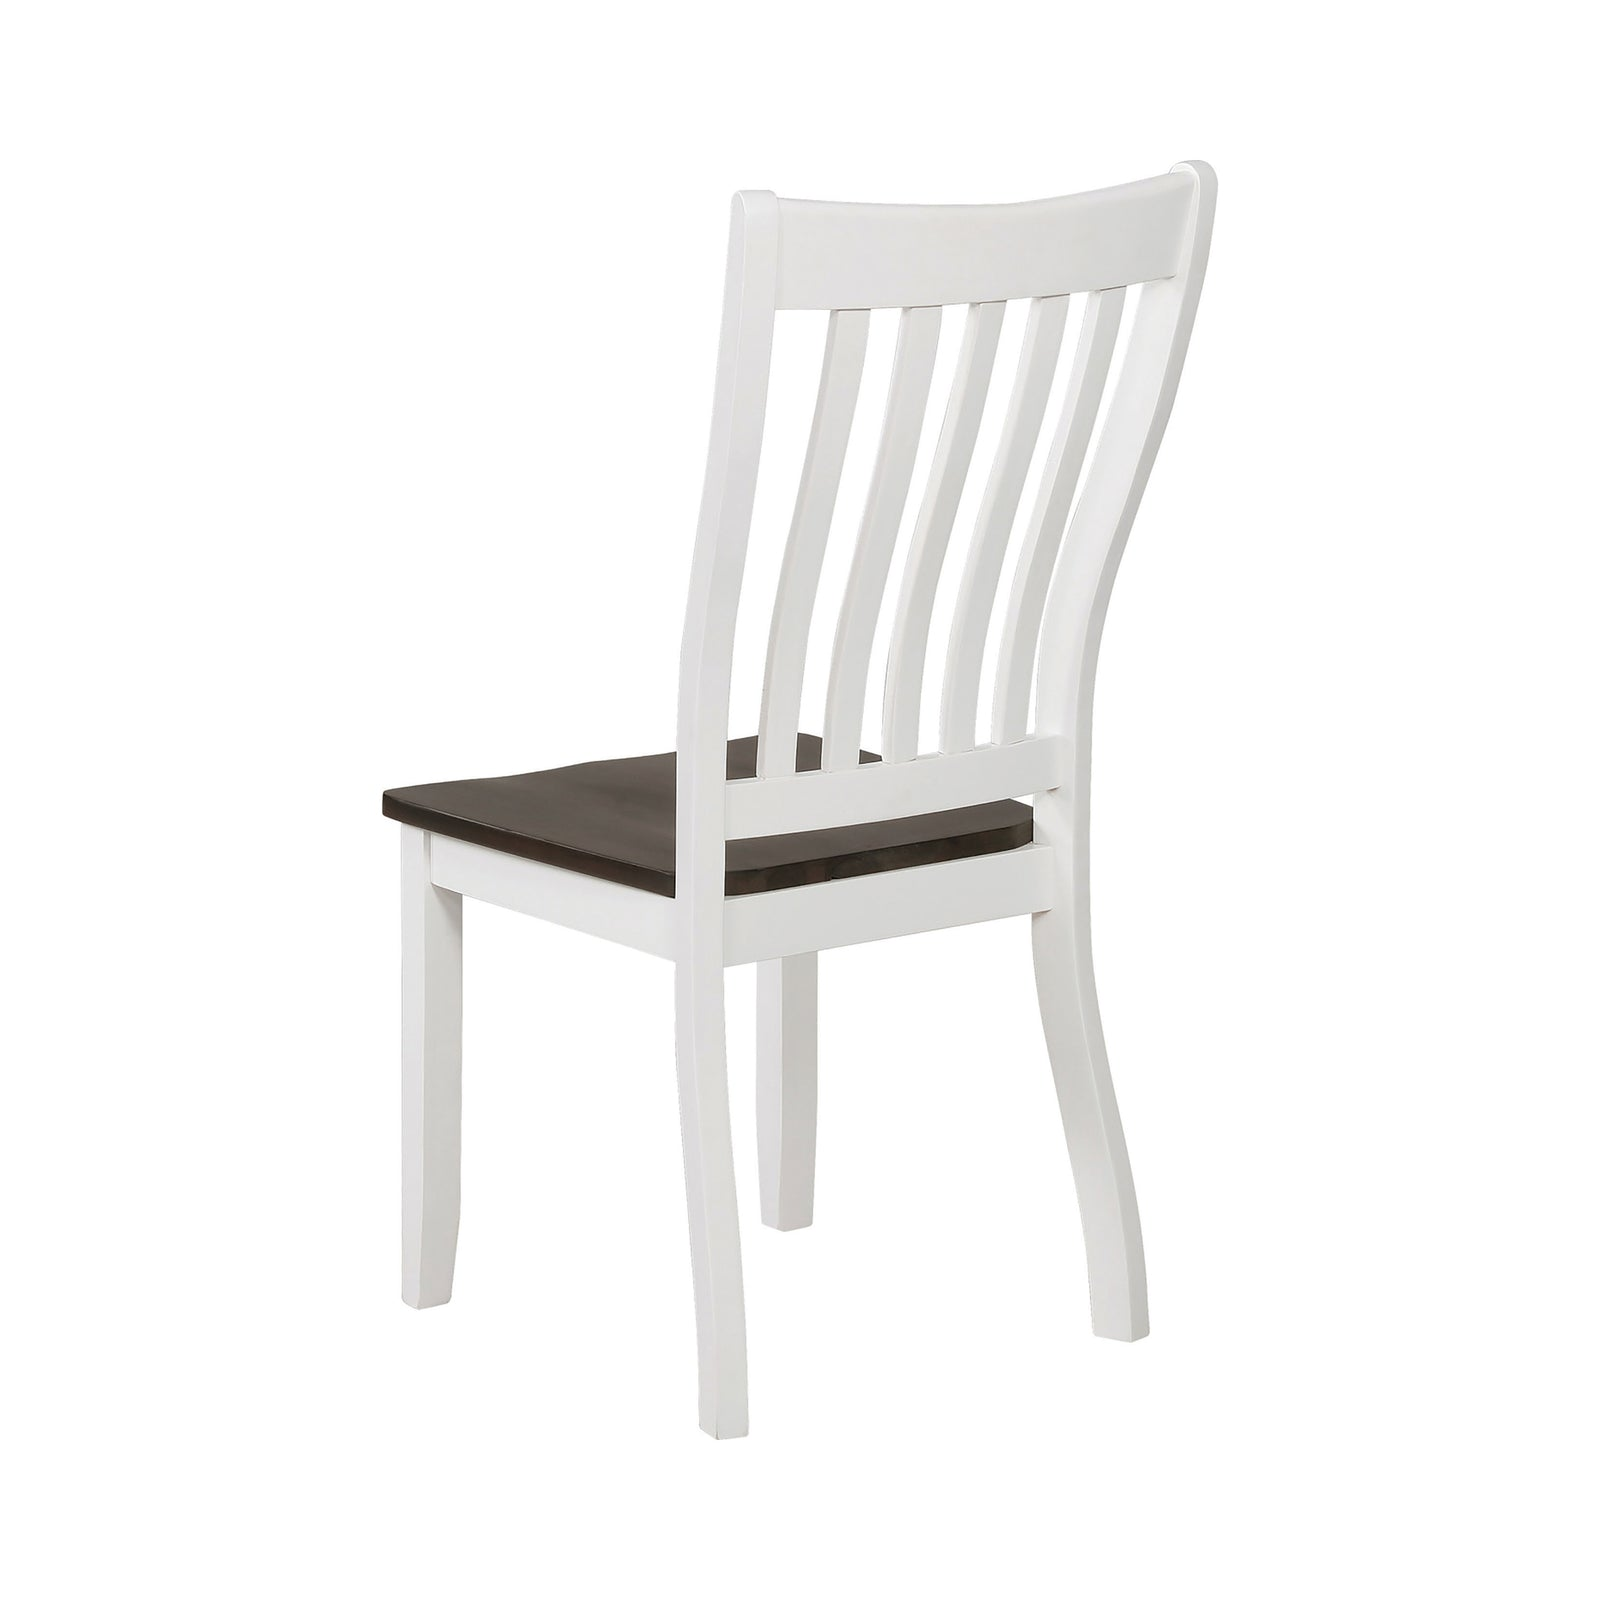 Coaster 109542 Slat Back Dining Side Chairs Espresso And White - 2 Count